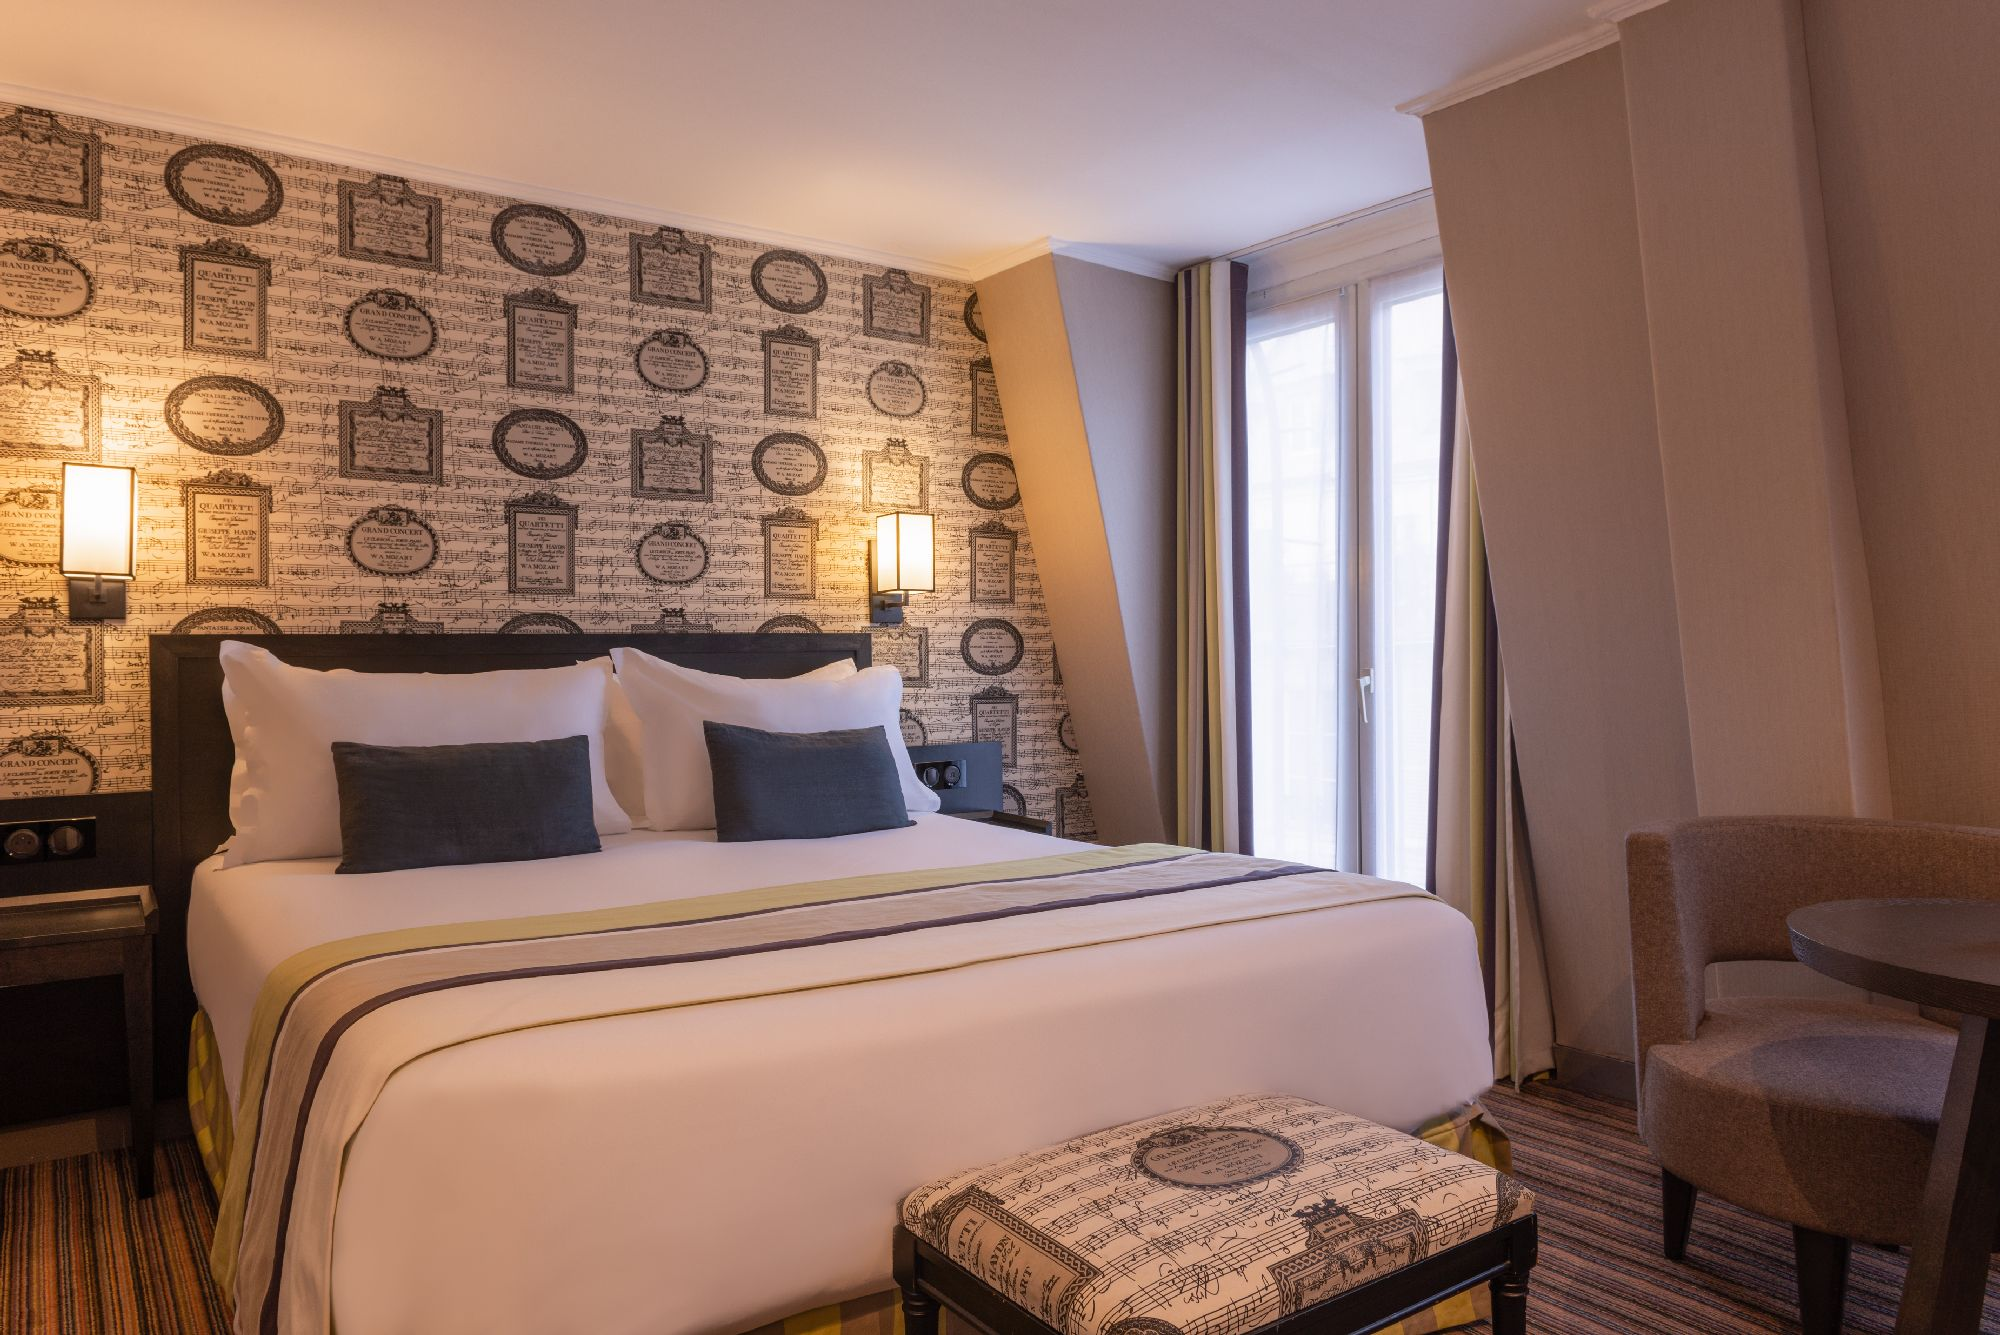 255/chambres/double/sup/hotel-FRANCE-D-ANTIN-OPERA-dbl sup 3-france d antin.jpg